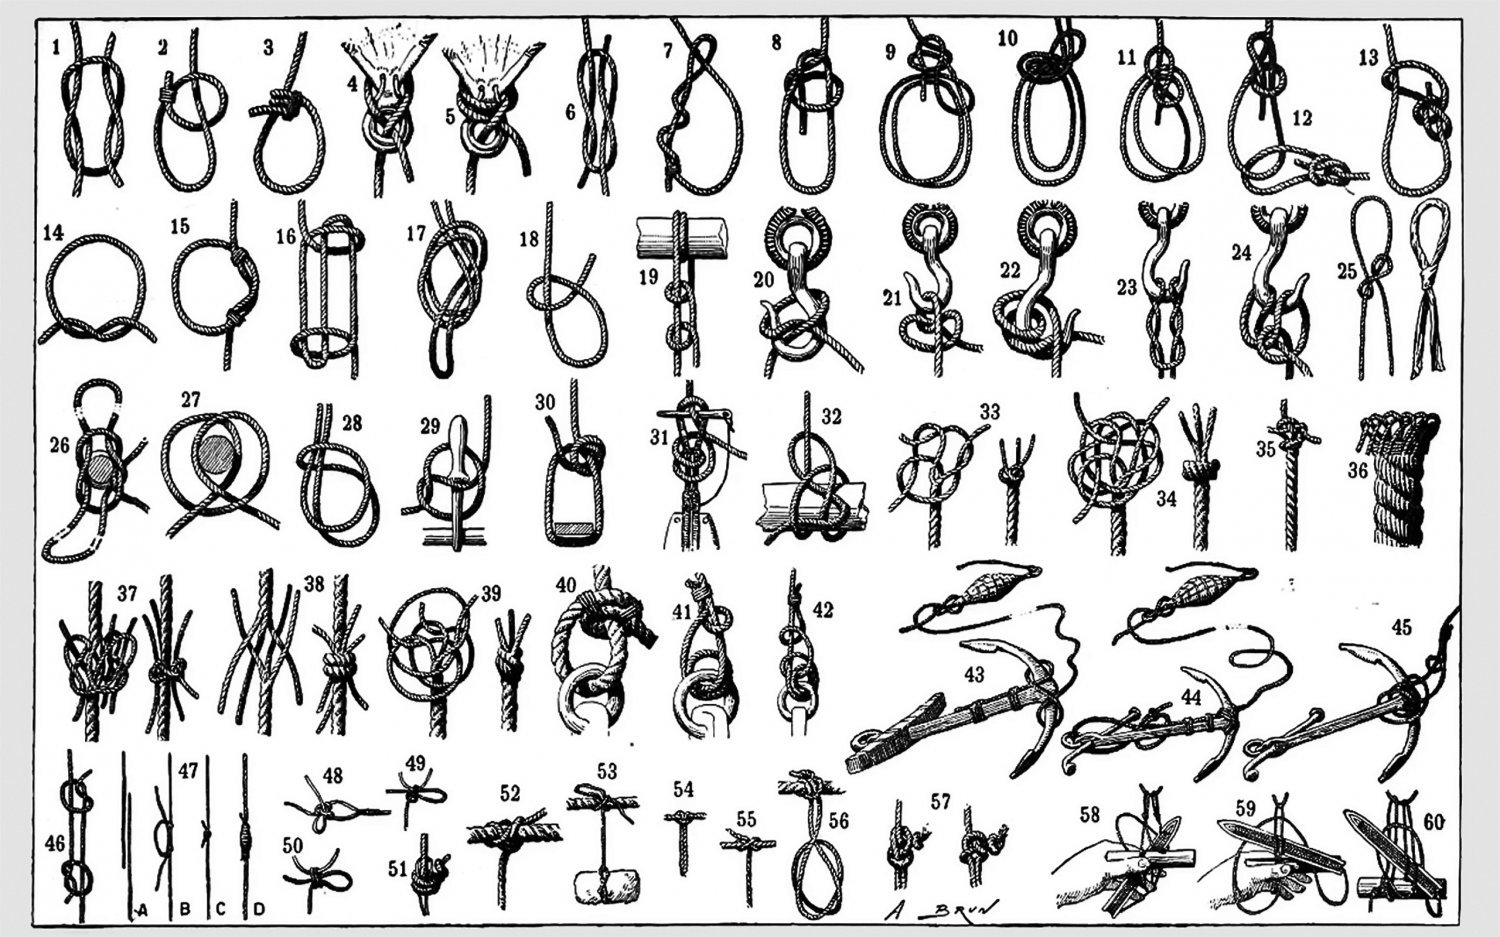 Knots and Splices Chart  18x28 inches Poster Print